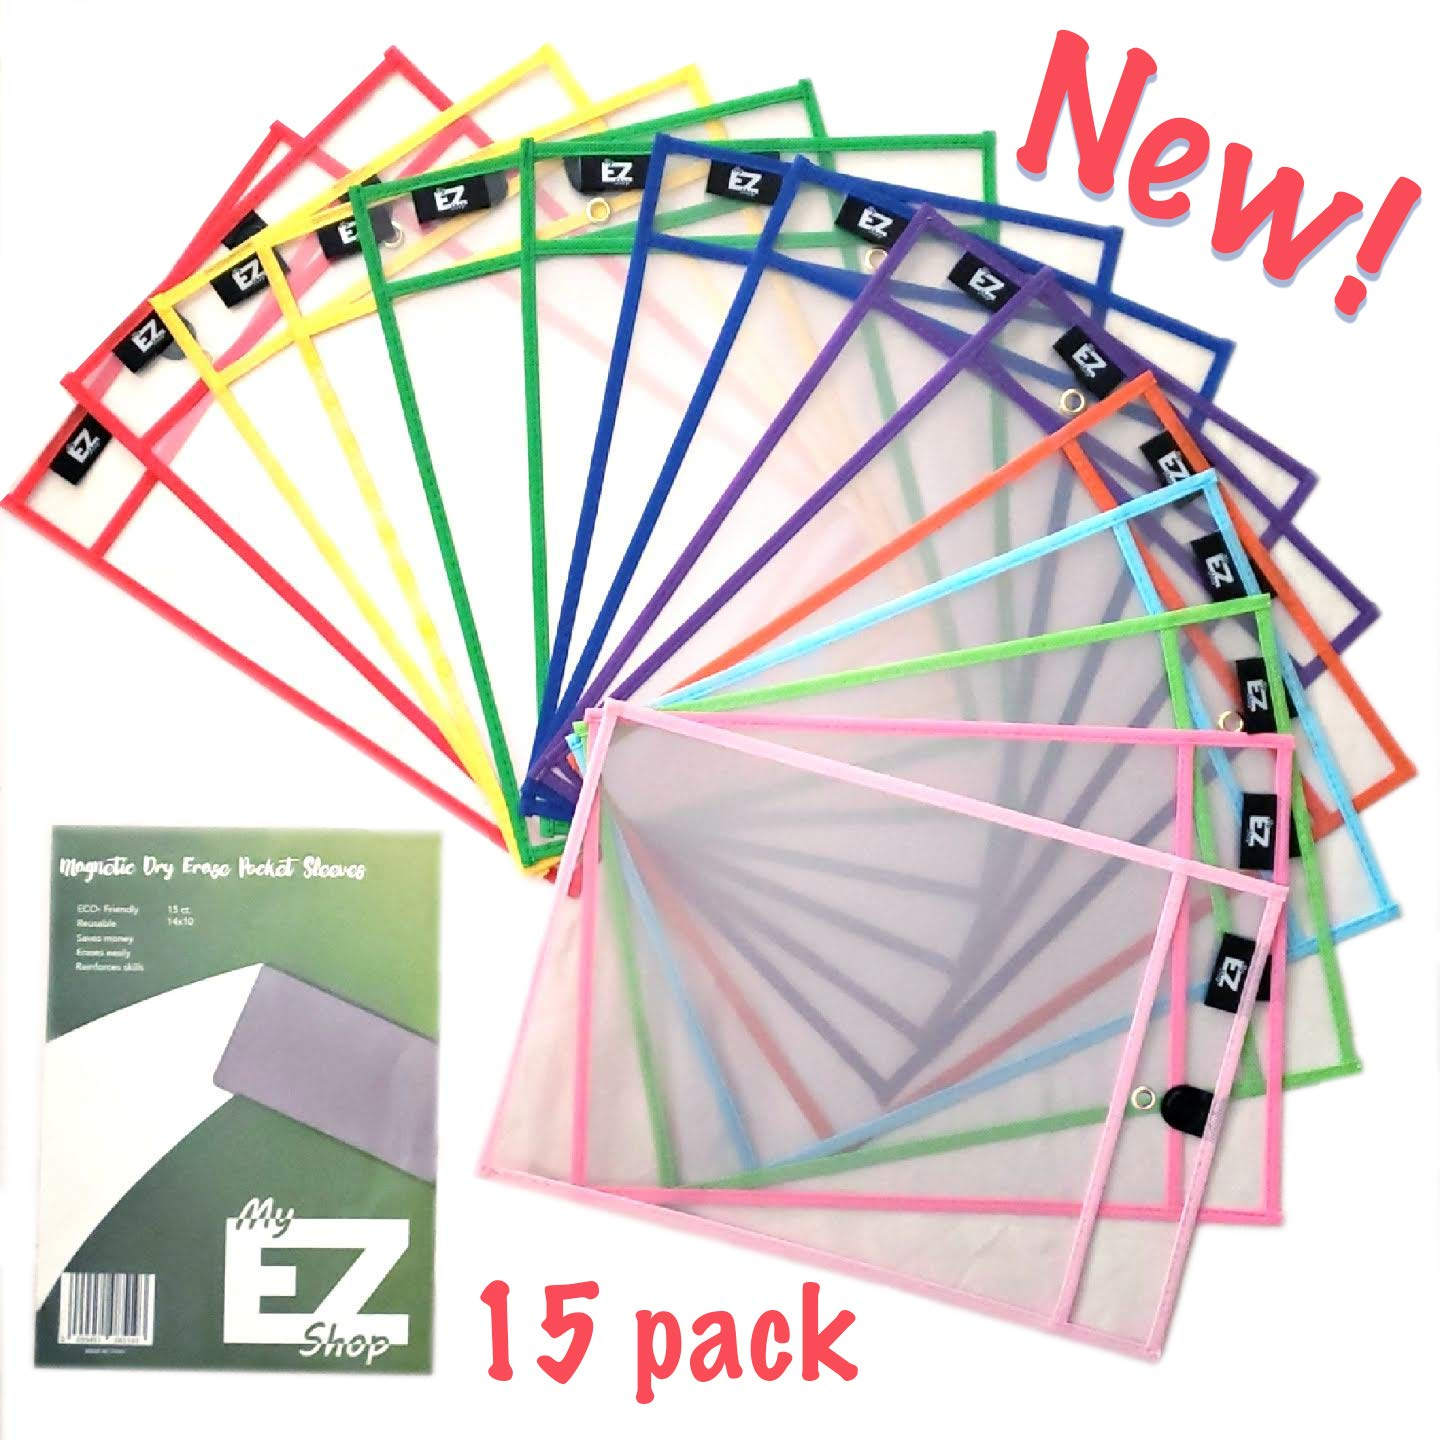 Magnetic Dry Erase Pocket Sleeves (15 Pack) by My EZ Shop- Reusable Erasable Sheet Protectors - Classroom, Business, and Home Organization. Write and Wipe - Eco Friendly- School Supplies by My EZ Shop